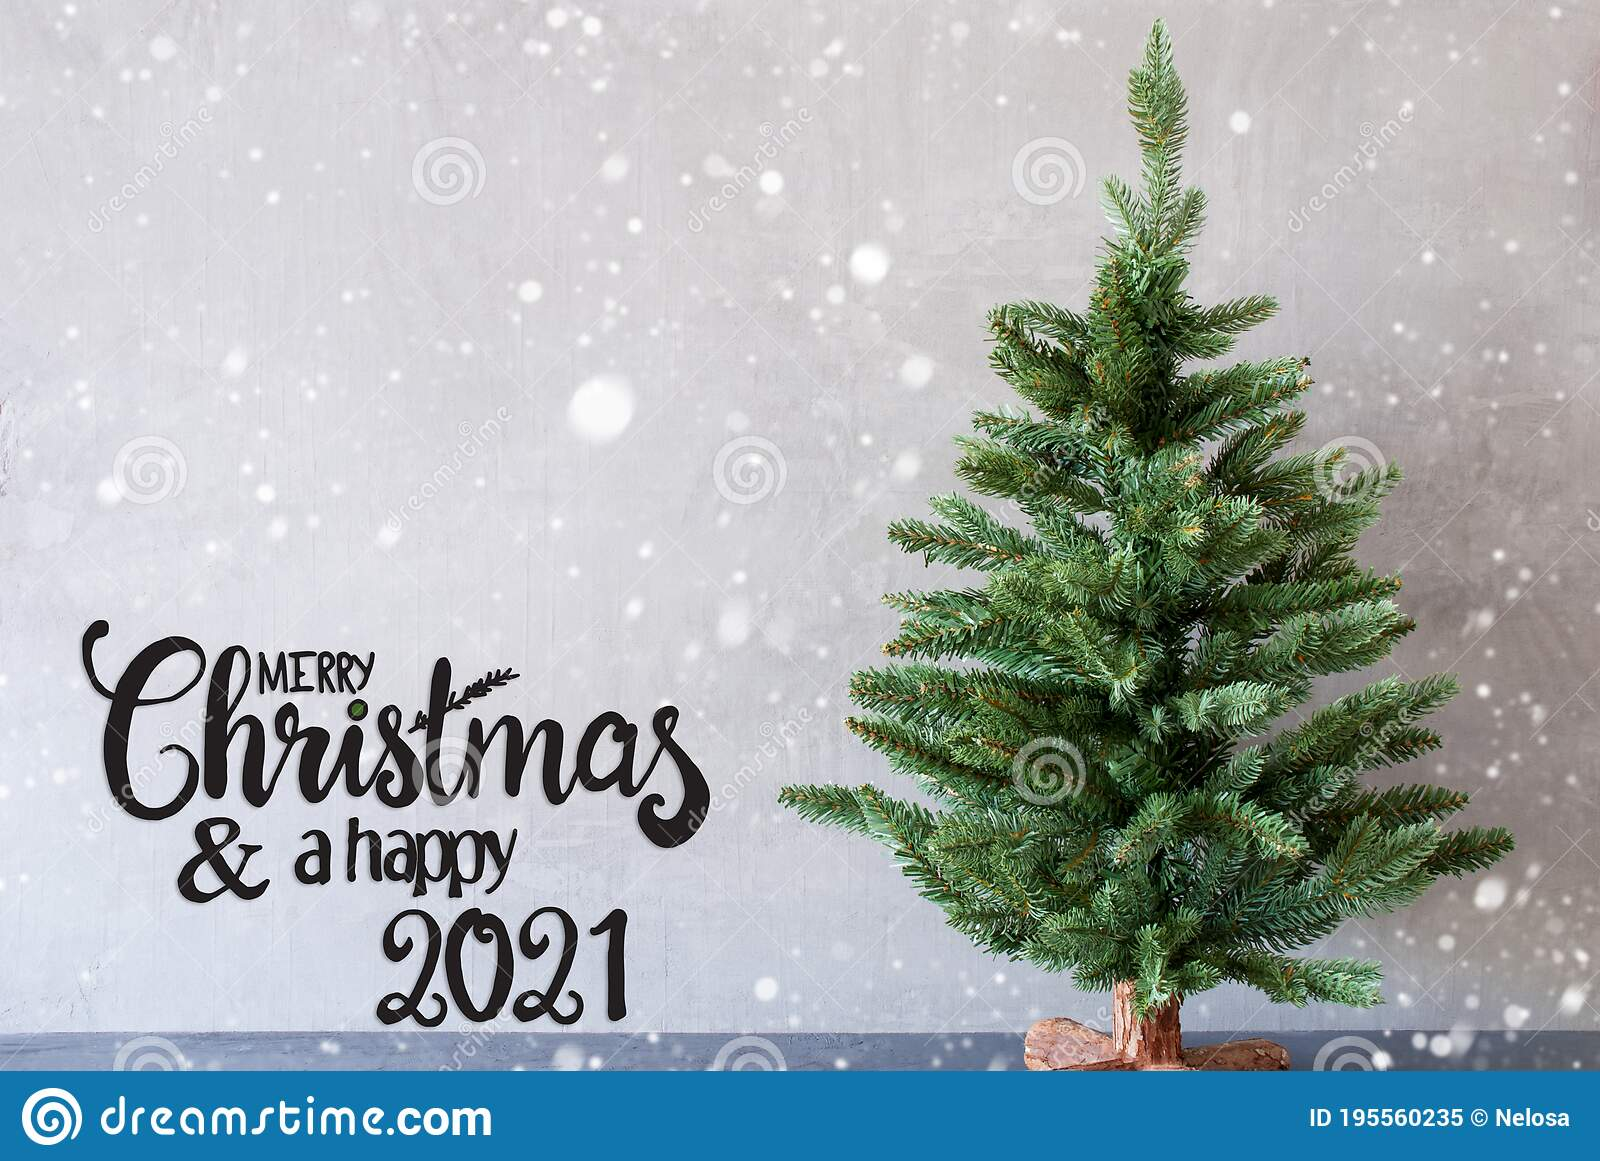 Merry Christmas 2021 Pictures Gray Tree Merry Christmas And A Happy 2021 Cement Background Snowflakes Stock Image Image Of Gray Holiday 195560235